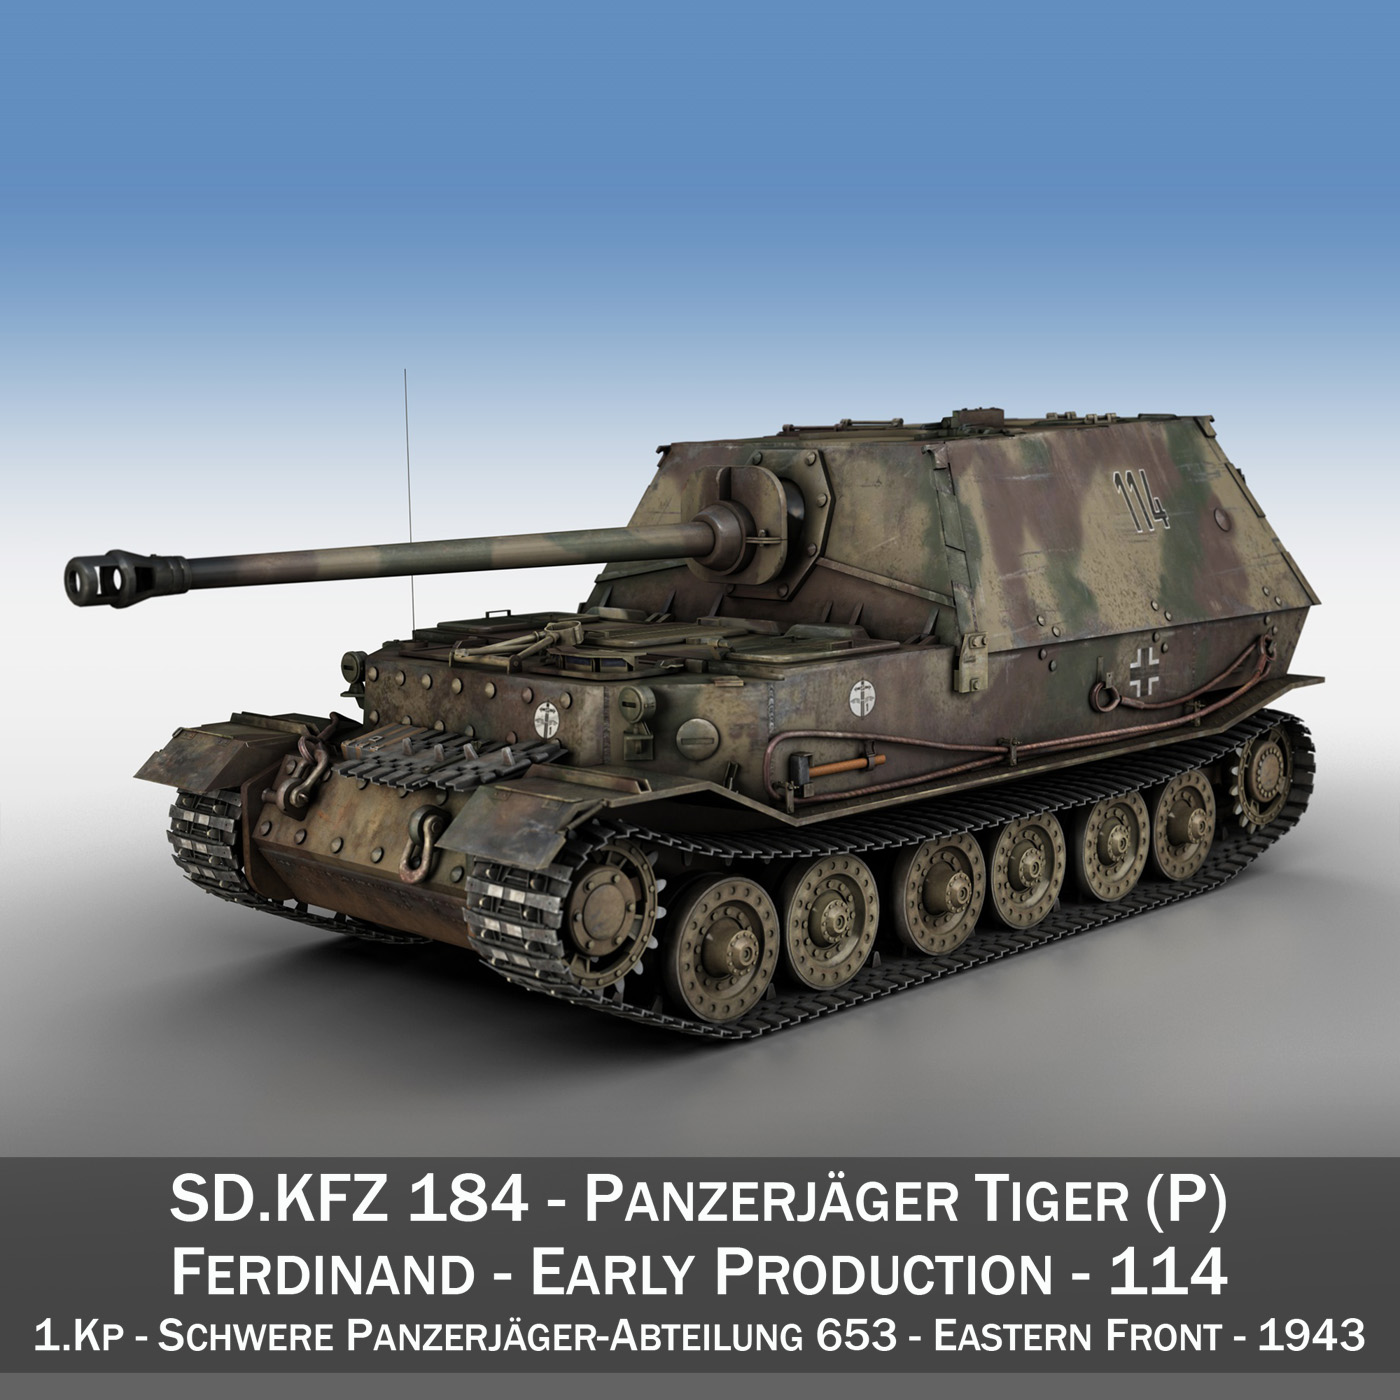 ferdinand tank destroyer – tiger (p) – 114 3d model 3ds fbx c4d lwo obj 293358